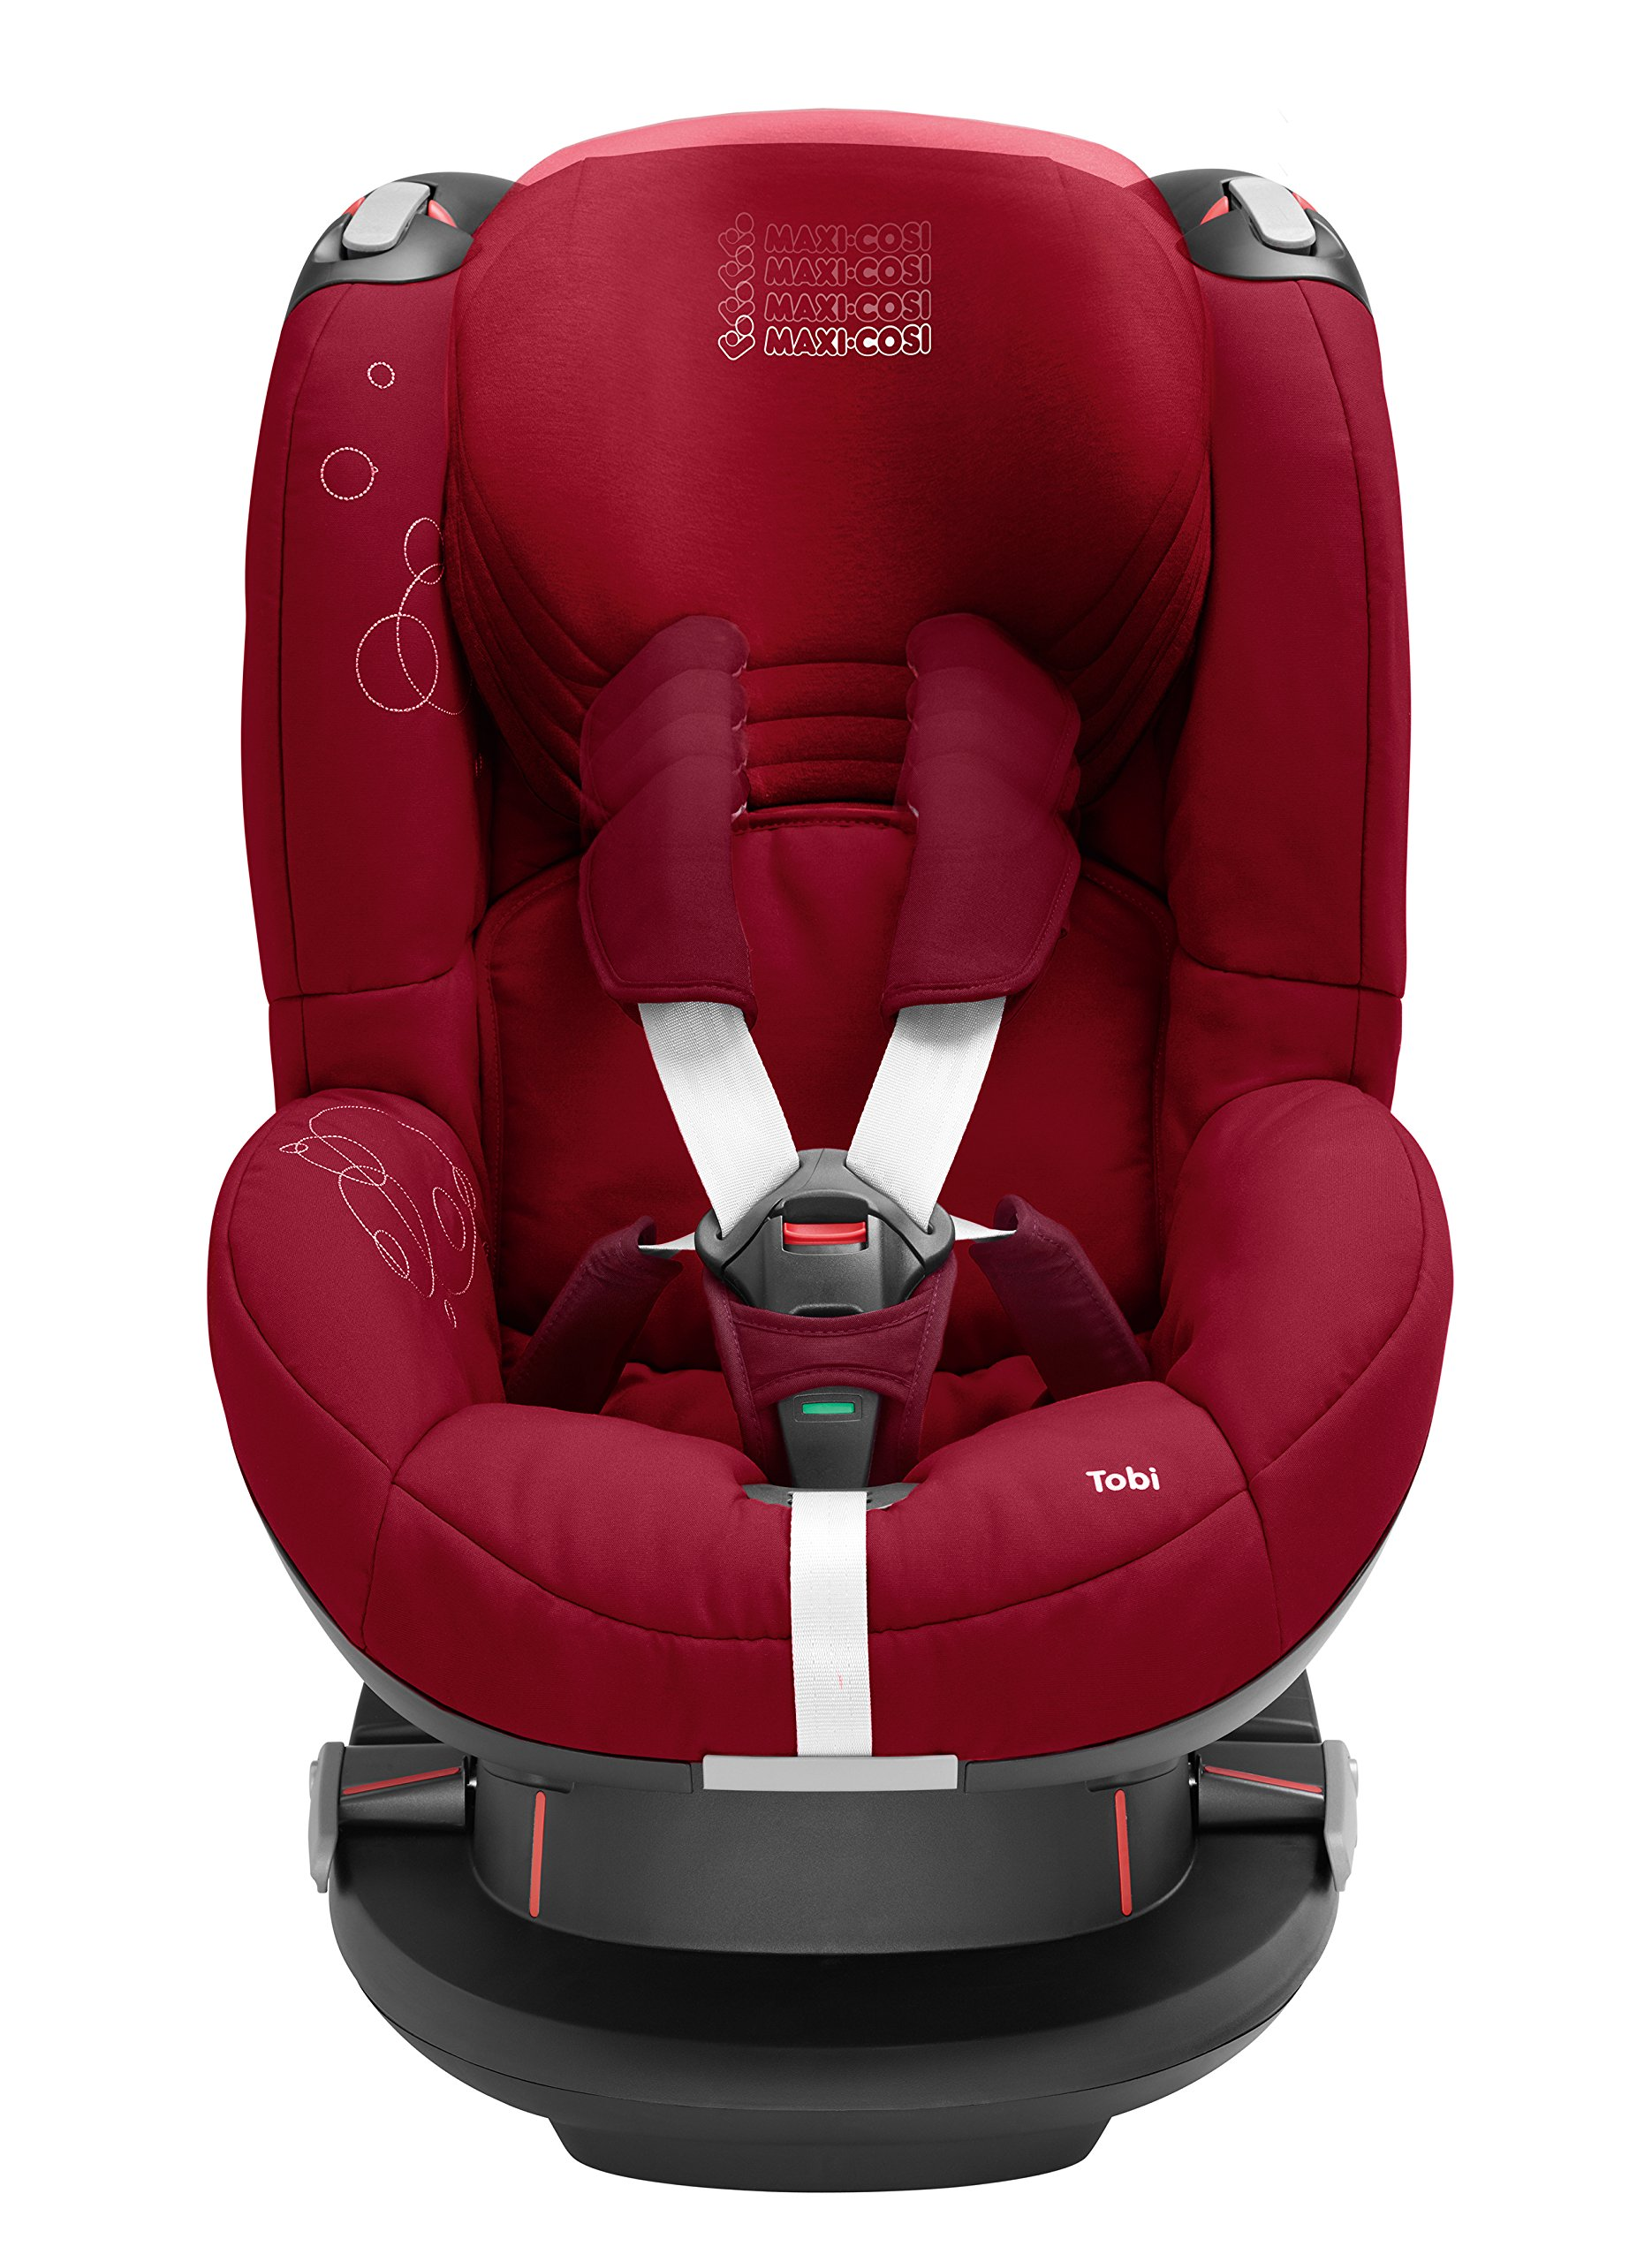 Maxi-Cosi Tobi Toddler Car Seat Group 1, Forward-Facing Reclining Car Seat, 9 Months-4 Years, 9-18 kg, Denim Hearts Maxi-Cosi Forward facing, suitable for toddler of weight 9-18 kg Easy to install with a three-point safety belt Intuitive and easy to read belt routing 3